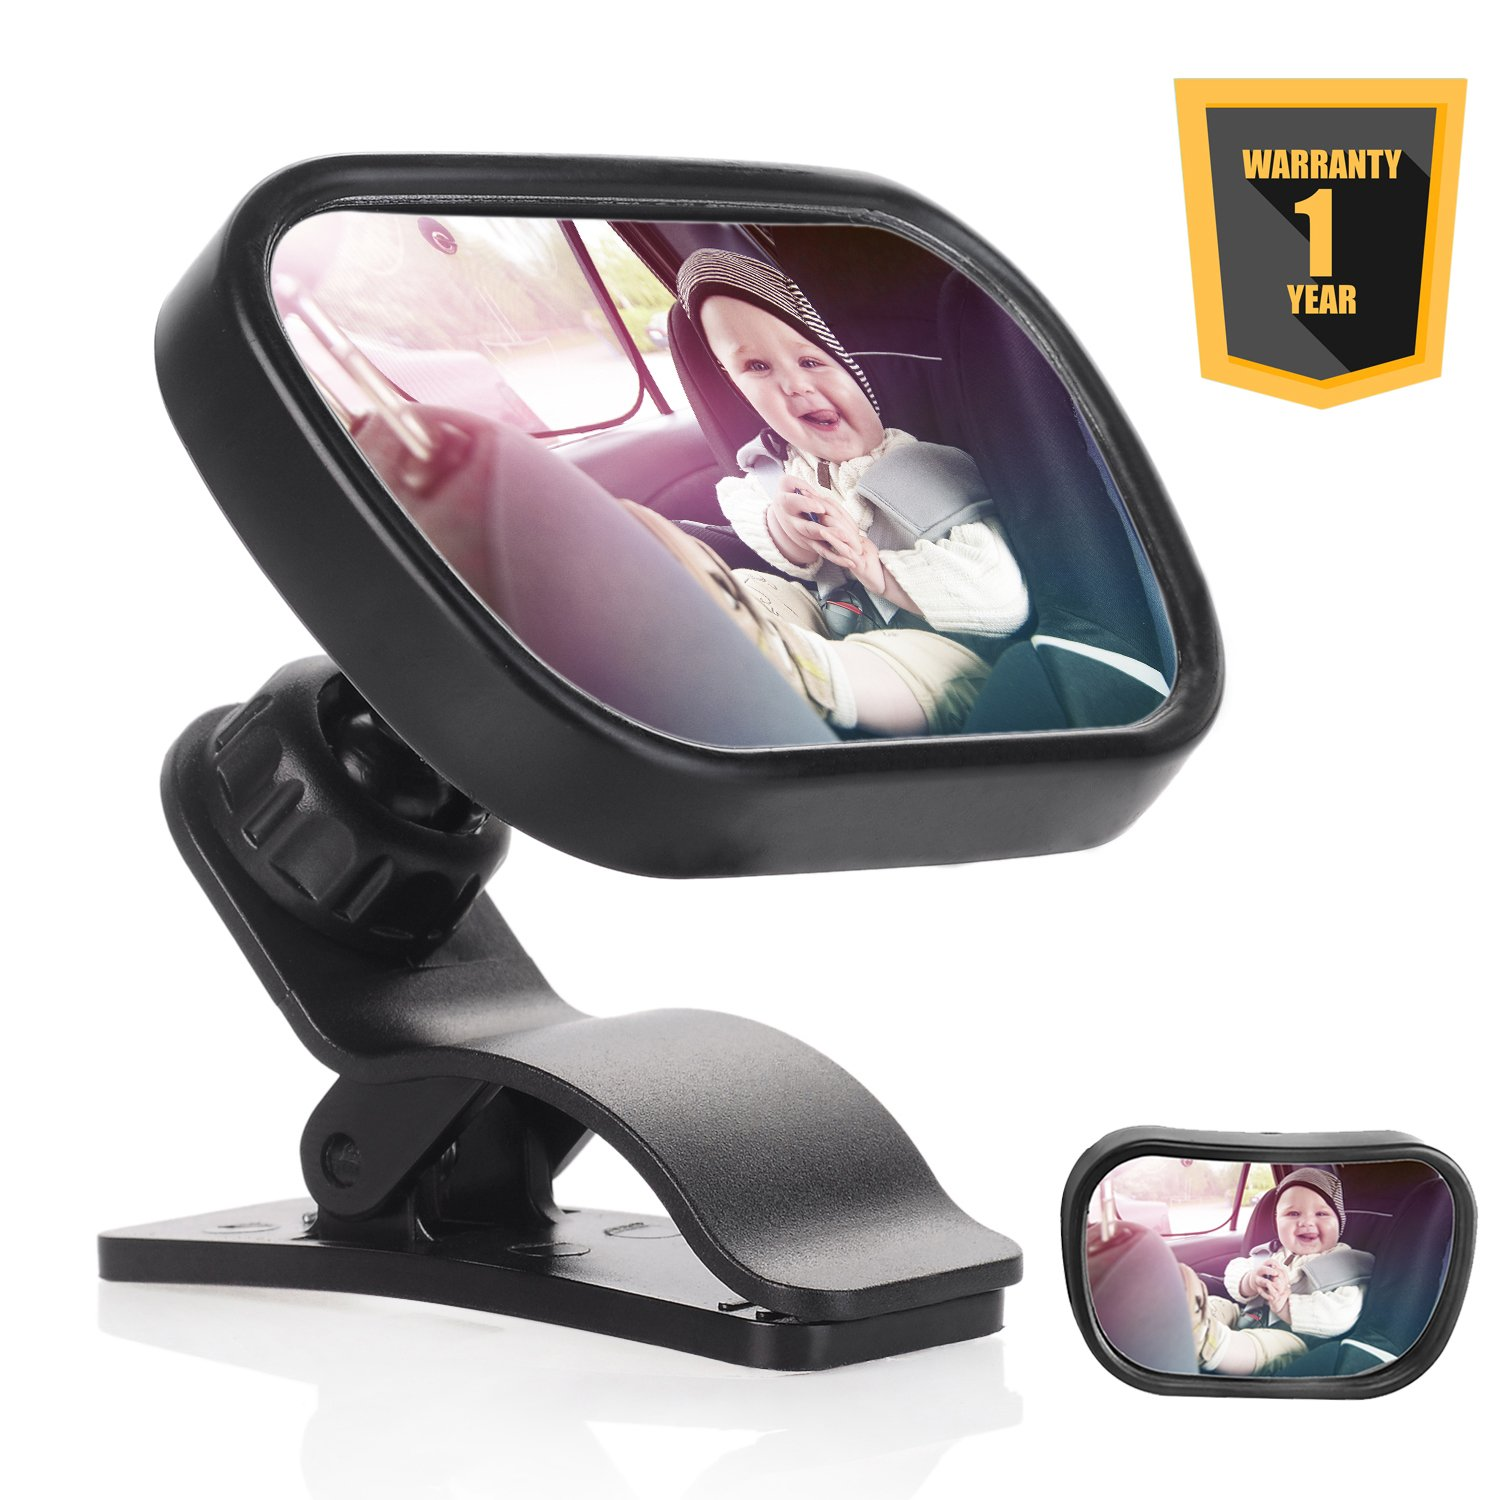 Emwel Baby Car Mirror Rear Facing, Shatterproof Safest Rear View Back Seat Mirror Convex Adjustable with Sucker and Clip for Baby Infant Toddler with Unbreakable Security Surface (88*58mm)